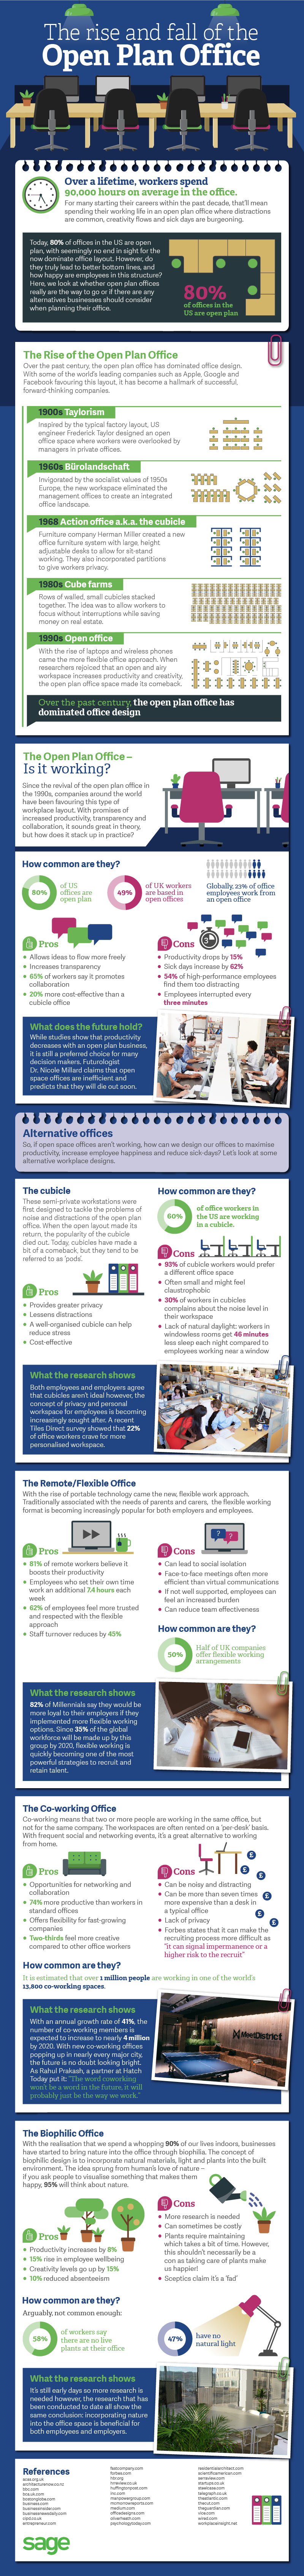 Sage_open-plan-offices-and-productivity_infographic